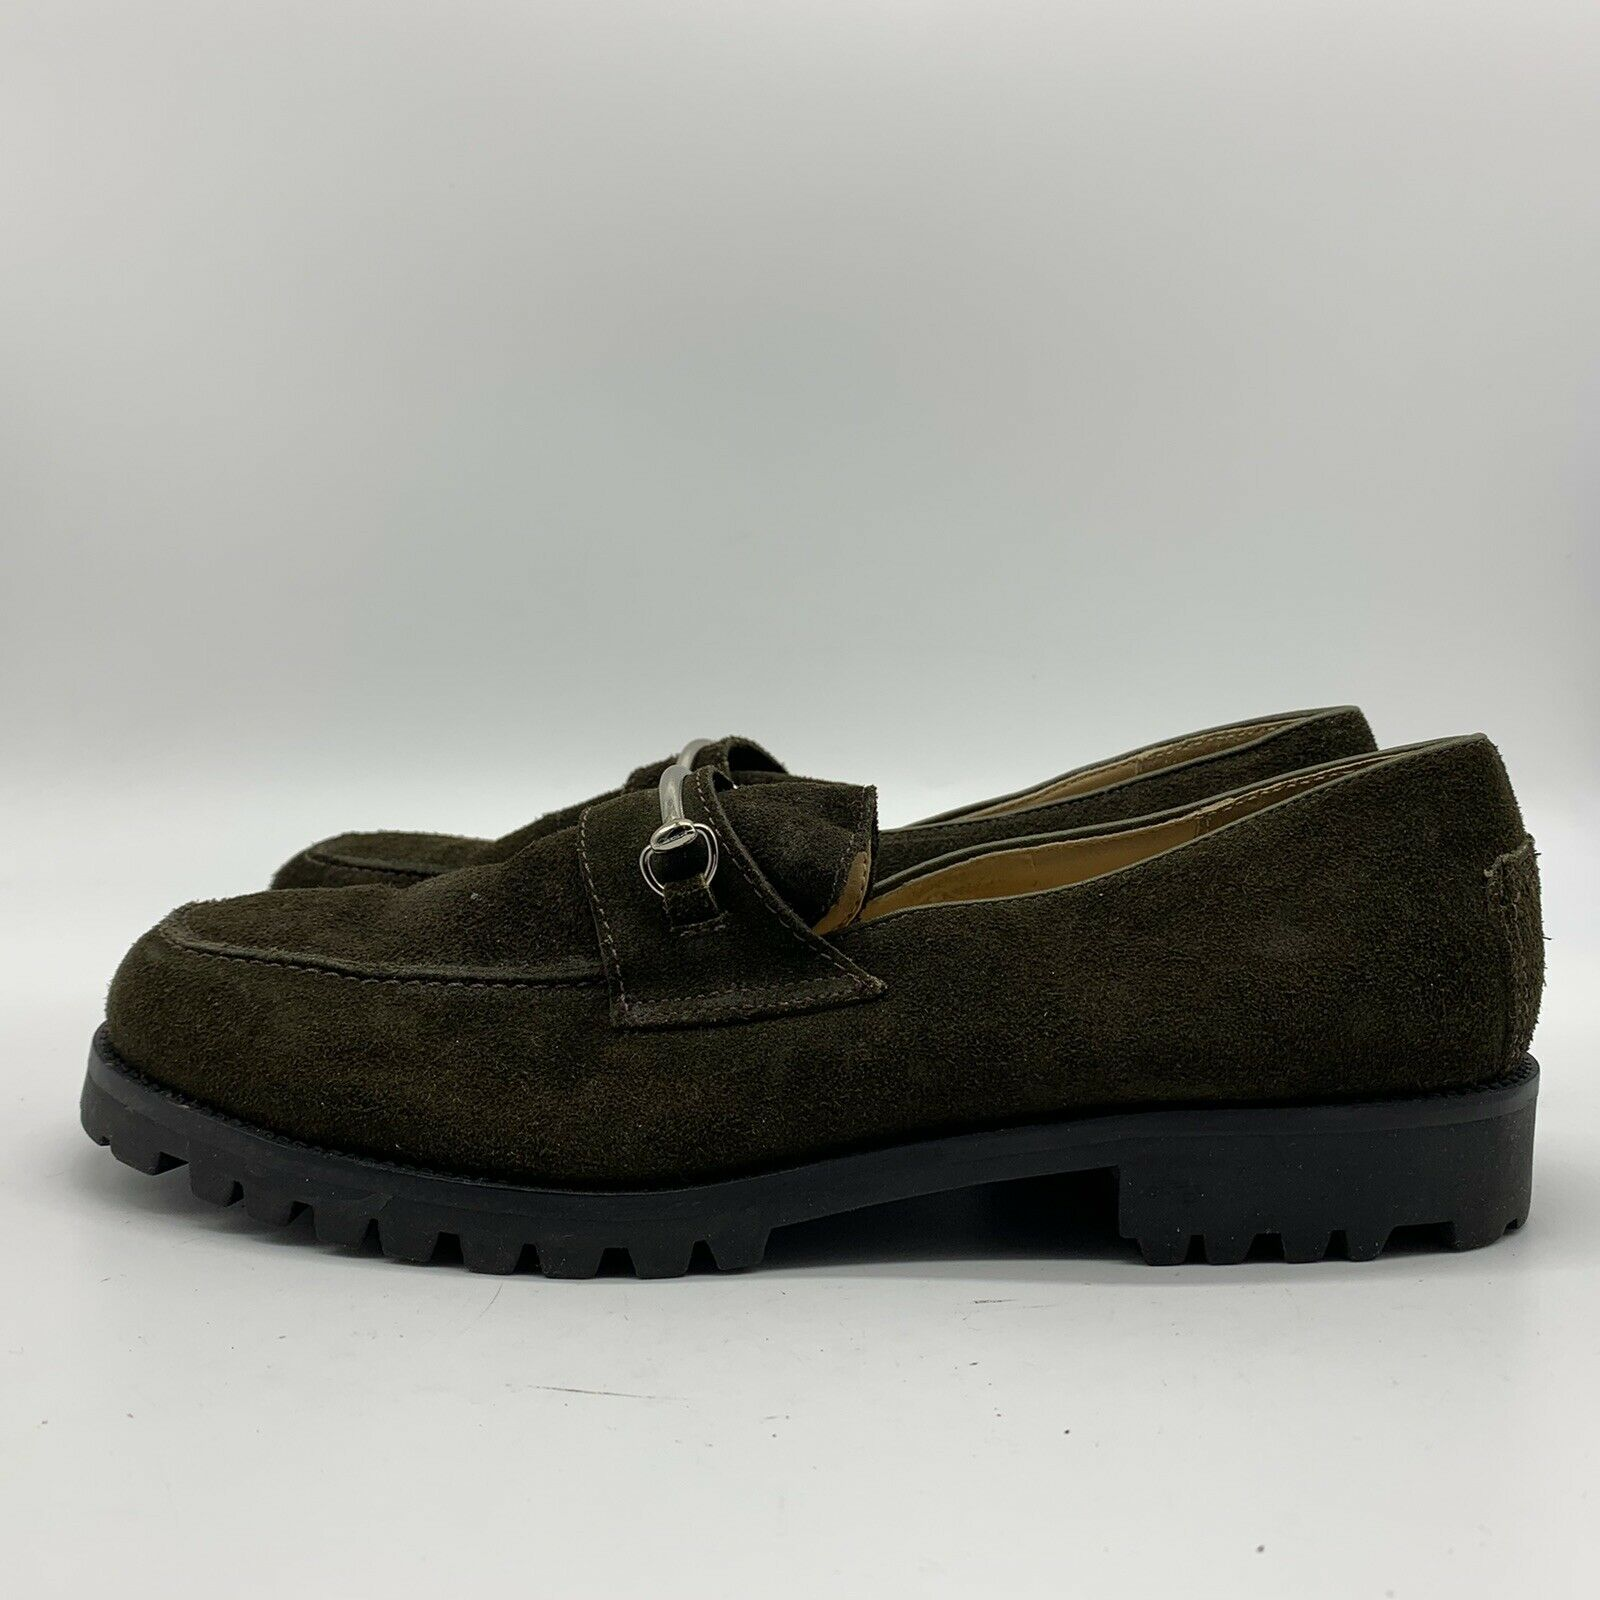 Ann Taylor Dark Green Slip On Oxford Loafers Shoes, Size 8.5